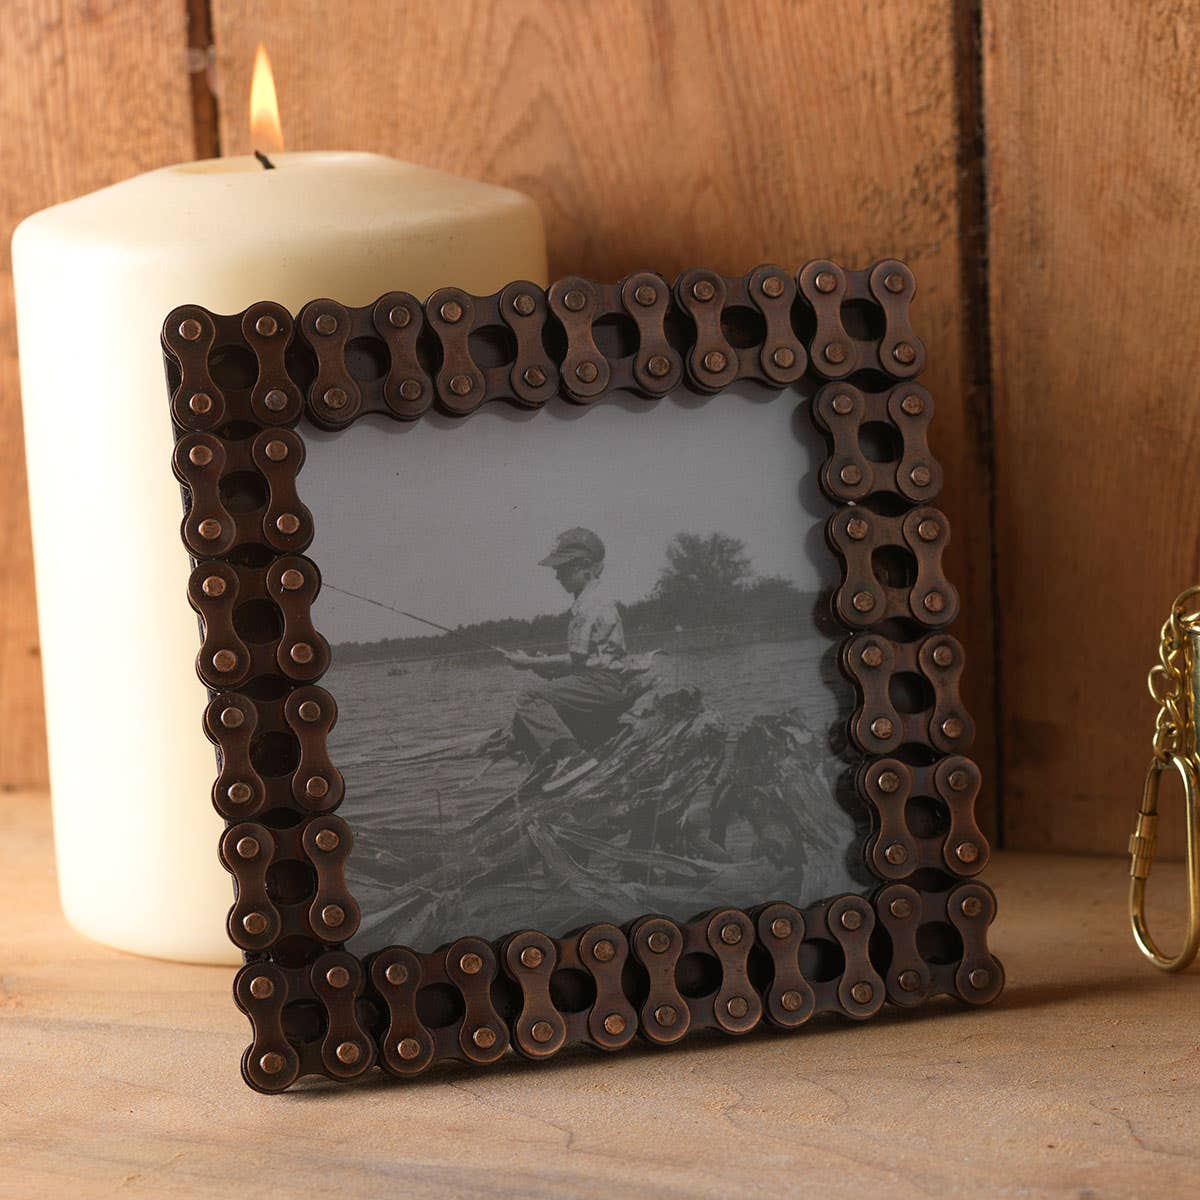 Recycled Bicycle Chain Photoframe